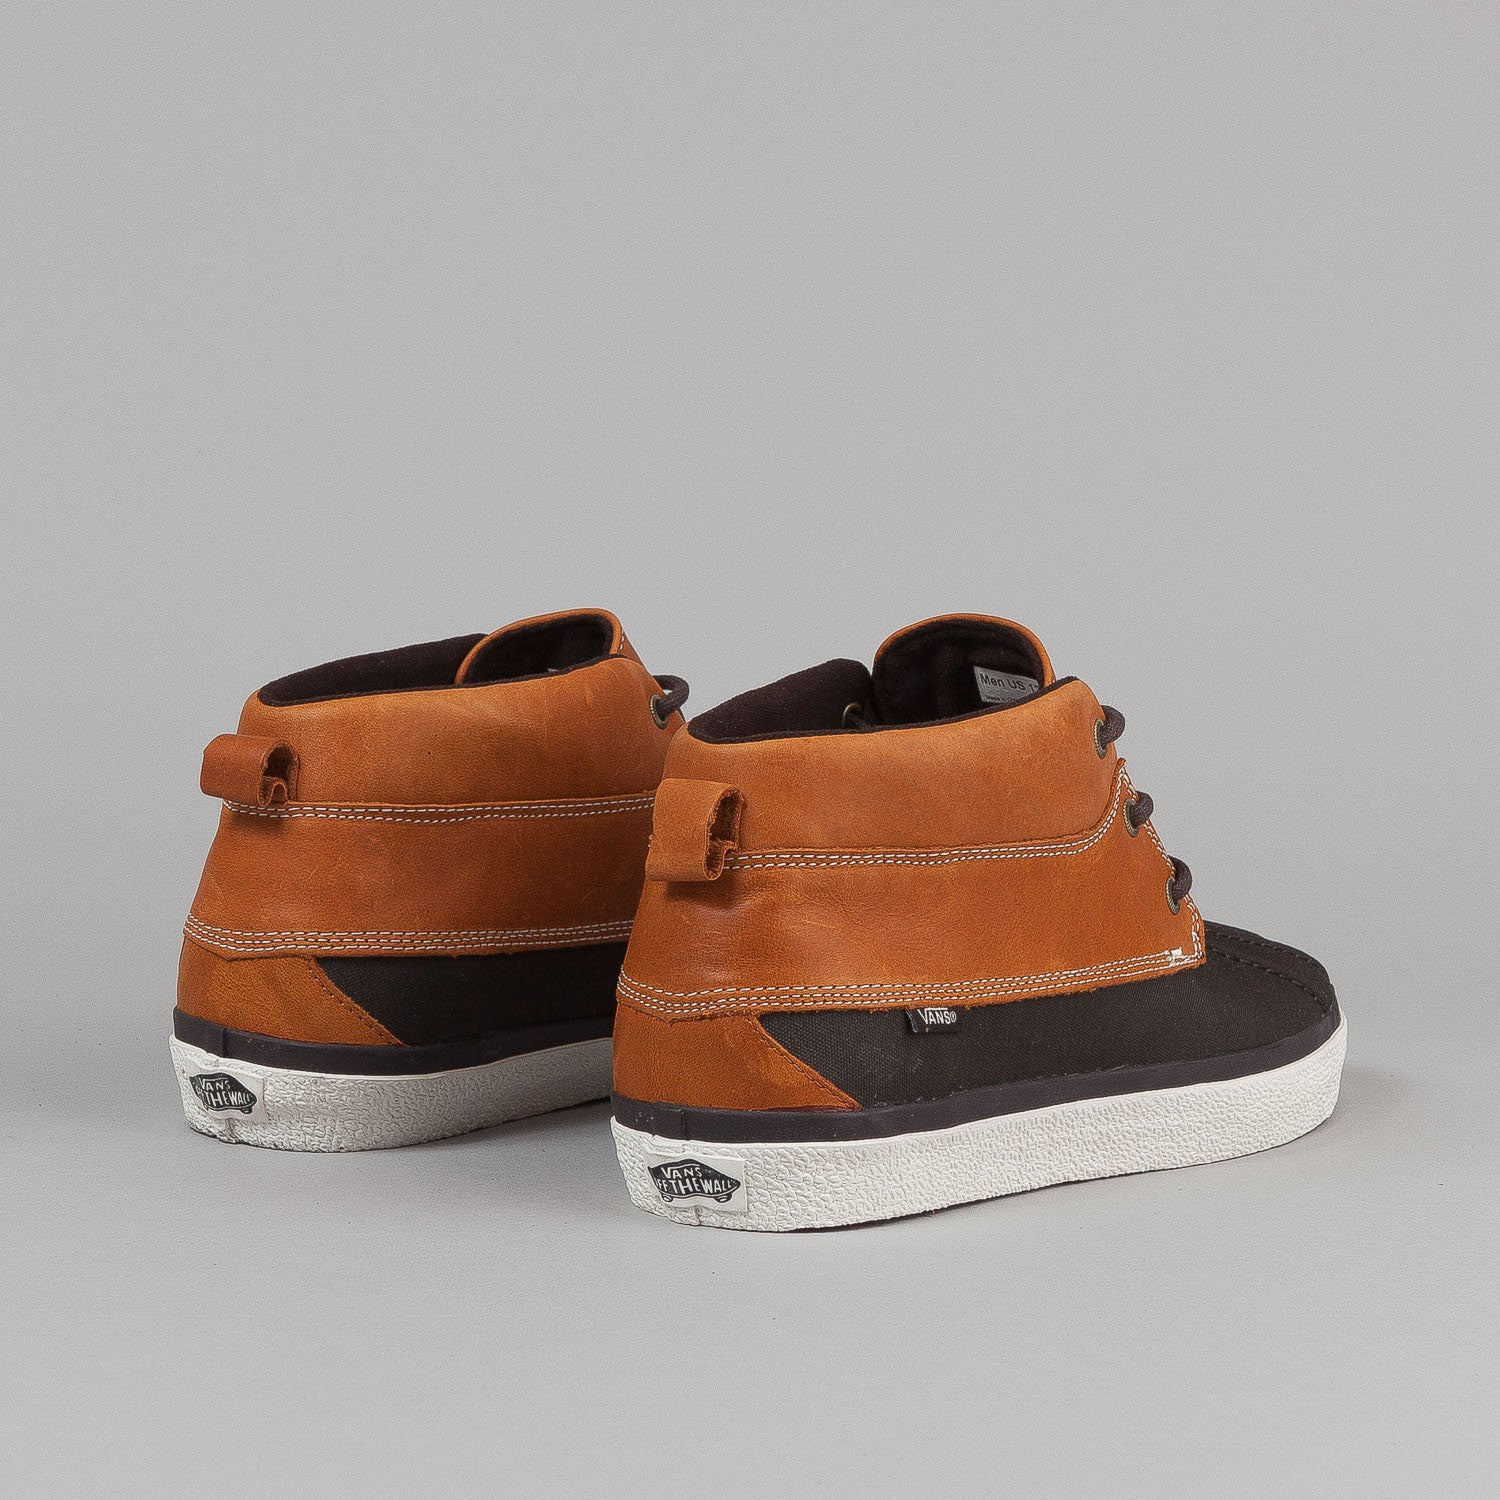 Vans Chukka Del Pato CA Shoes - After Dark / Vanilla Ice